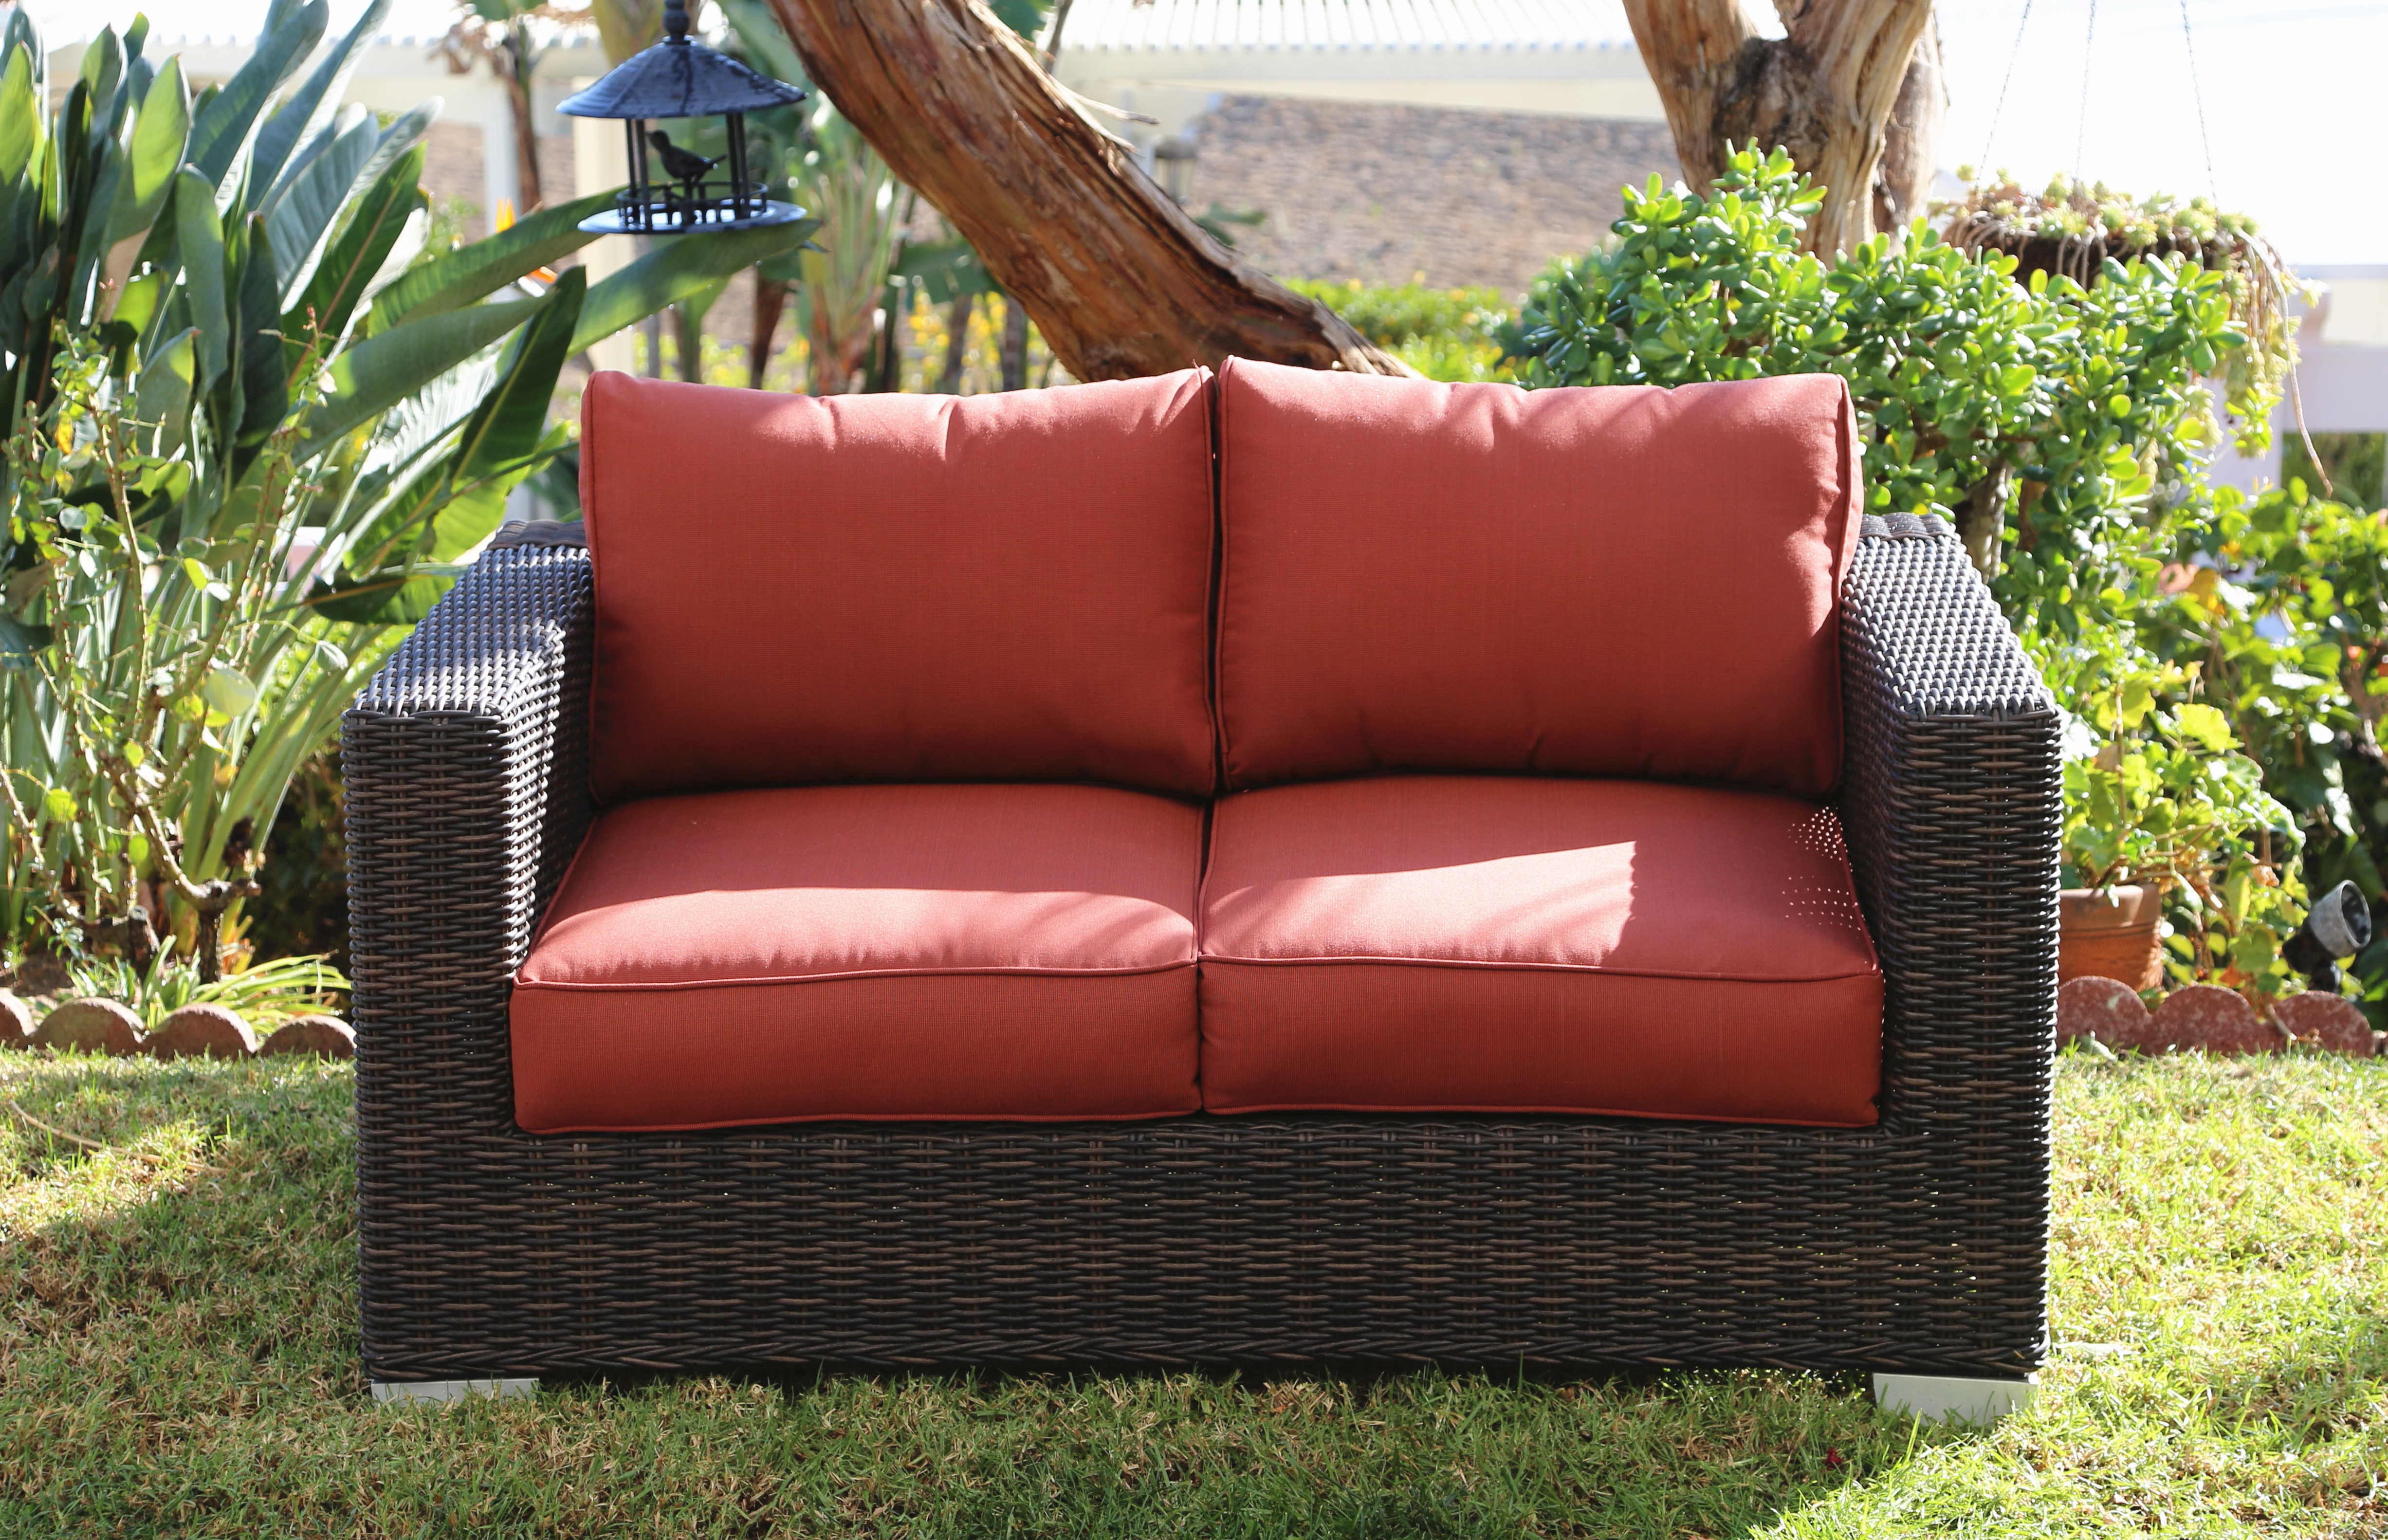 Huddleson Loveseats With Cushion Pertaining To Best And Newest Fults Loveseat With Cushion (View 10 of 20)